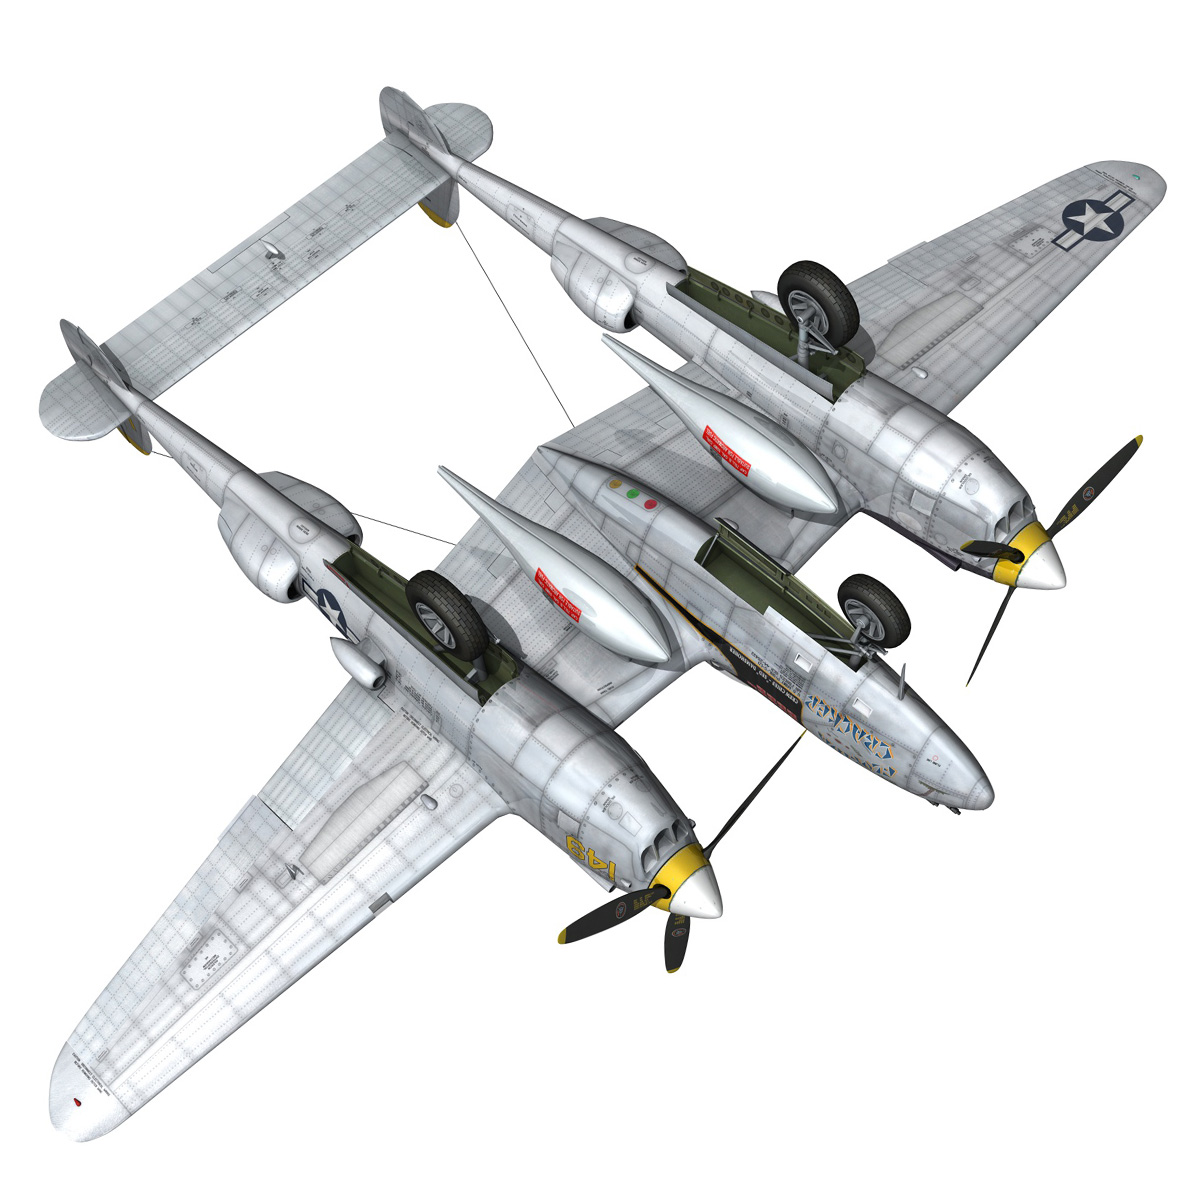 lockheed p-38 lightning – florida cracker 3d model fbx c4d lwo obj 279430